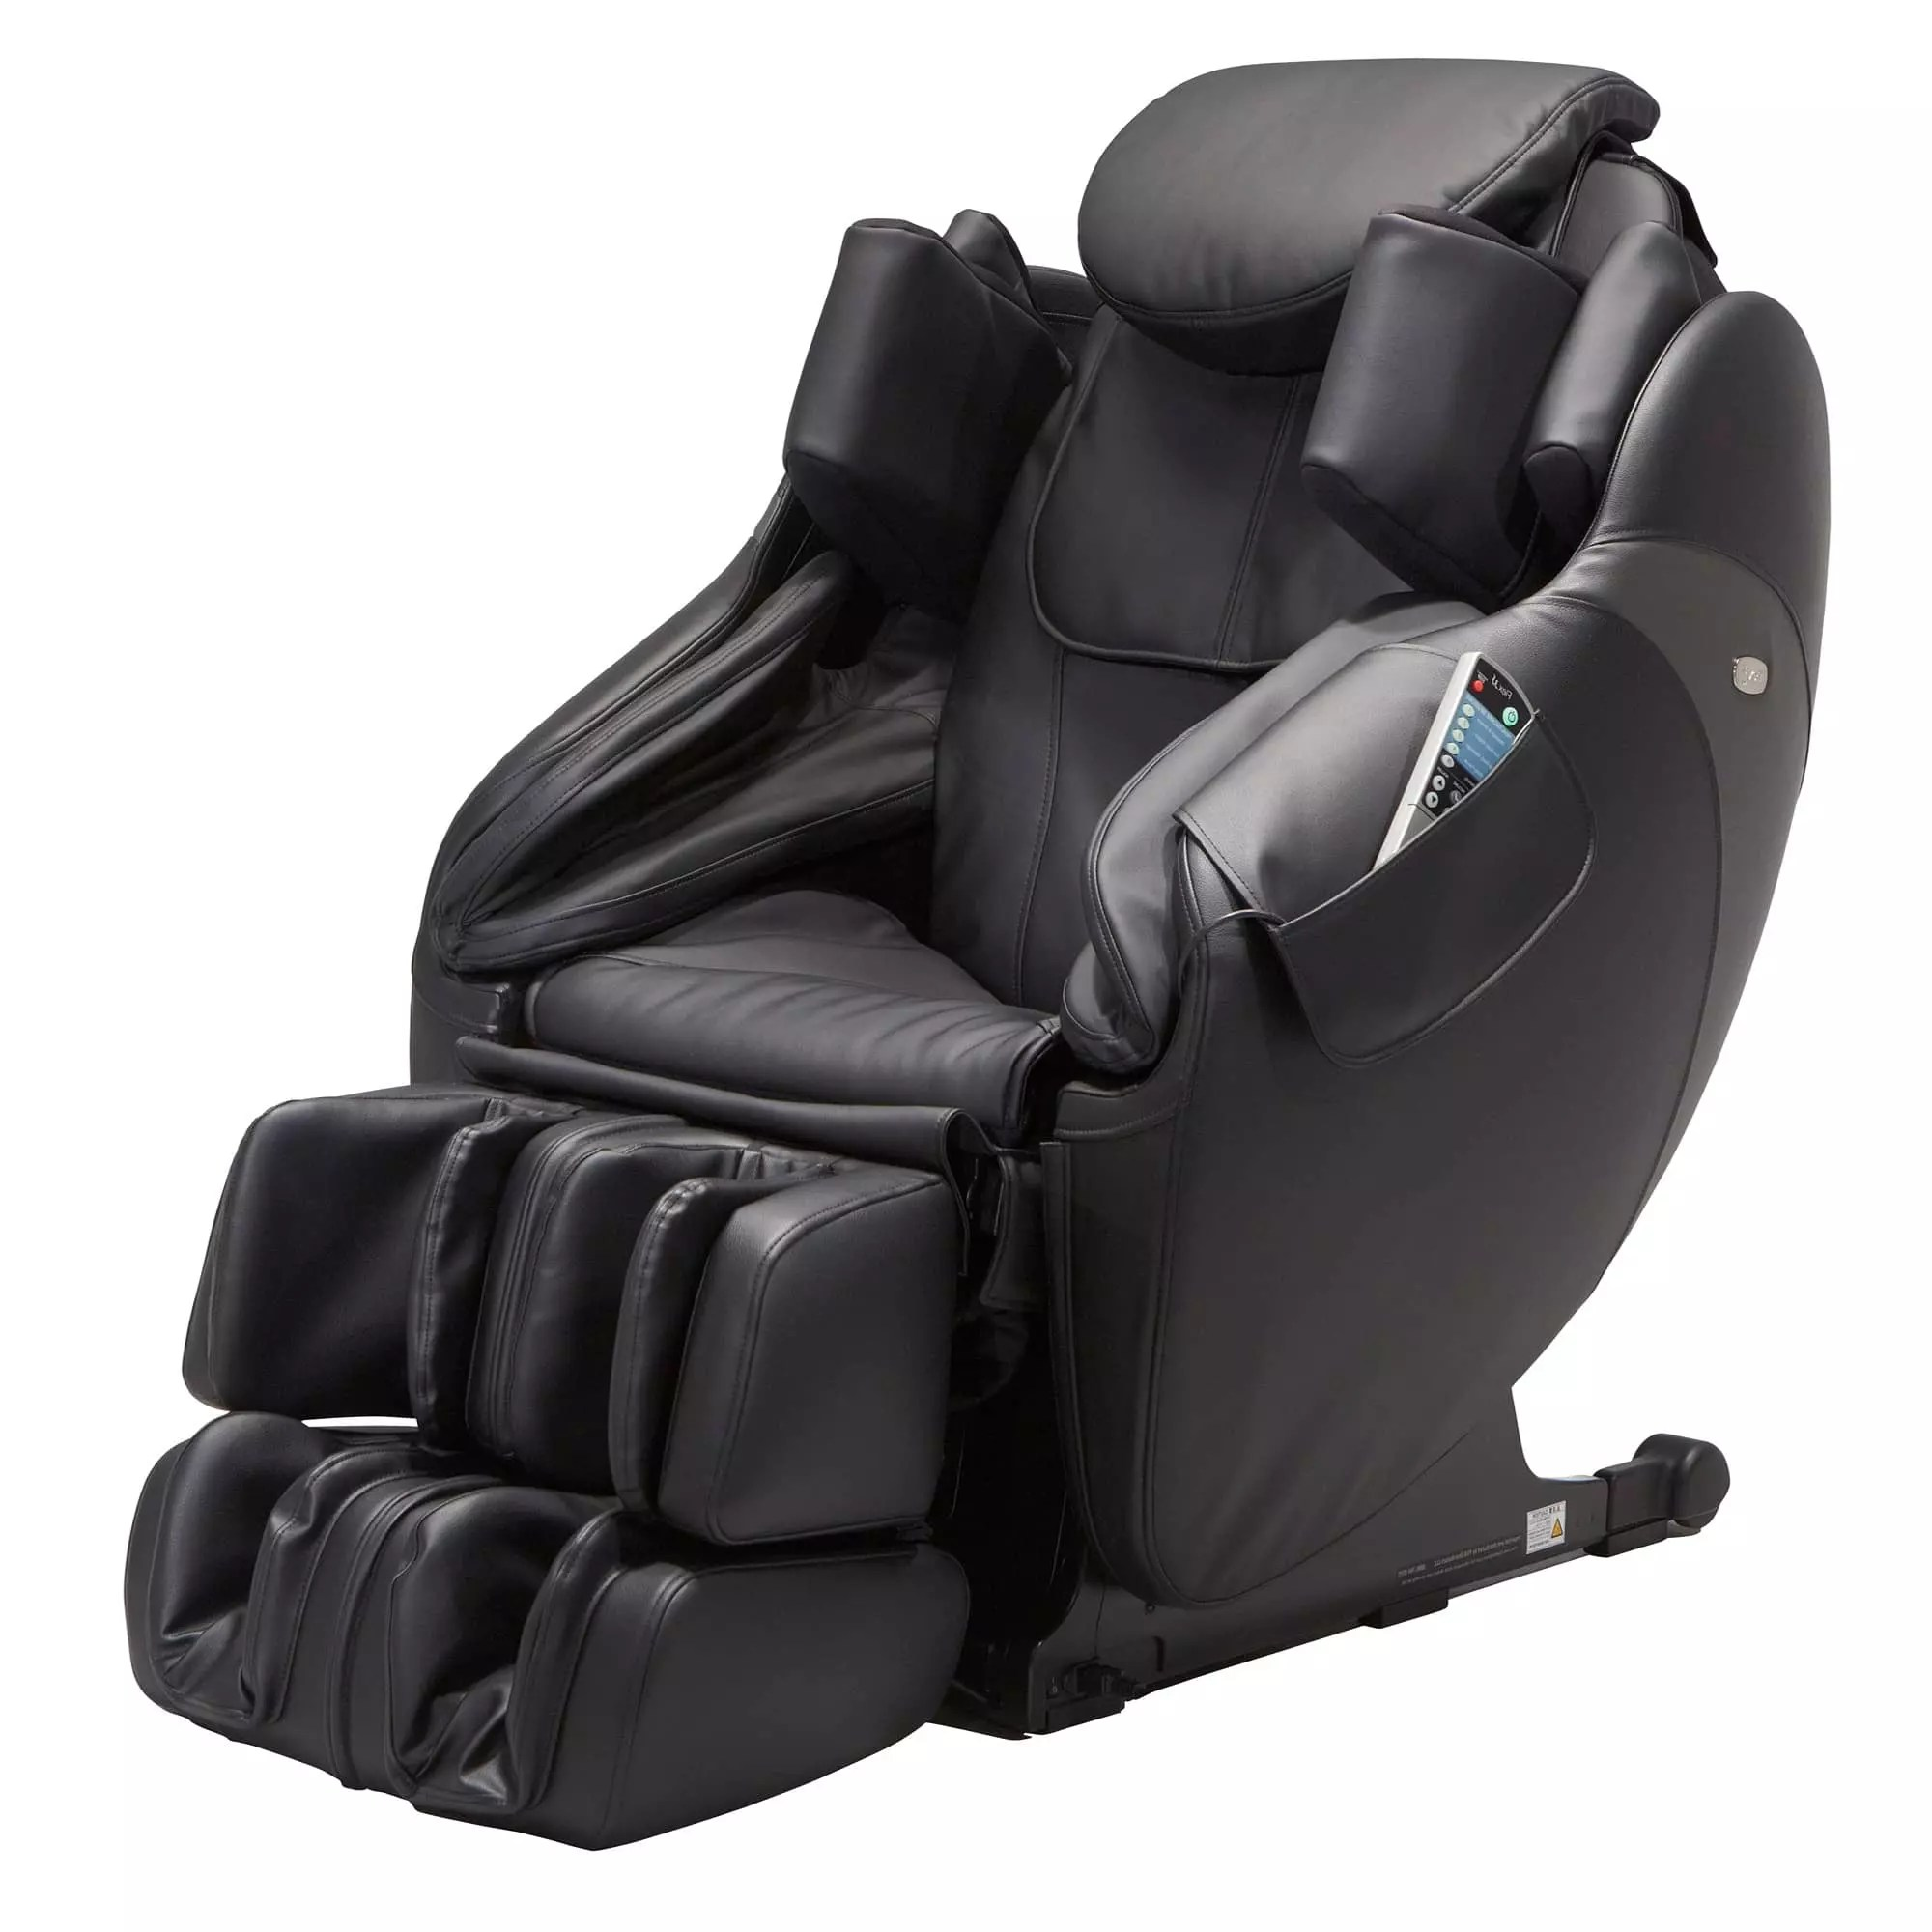 Inada Sogno Dreamwave Massage Chair Inada Flex 3s